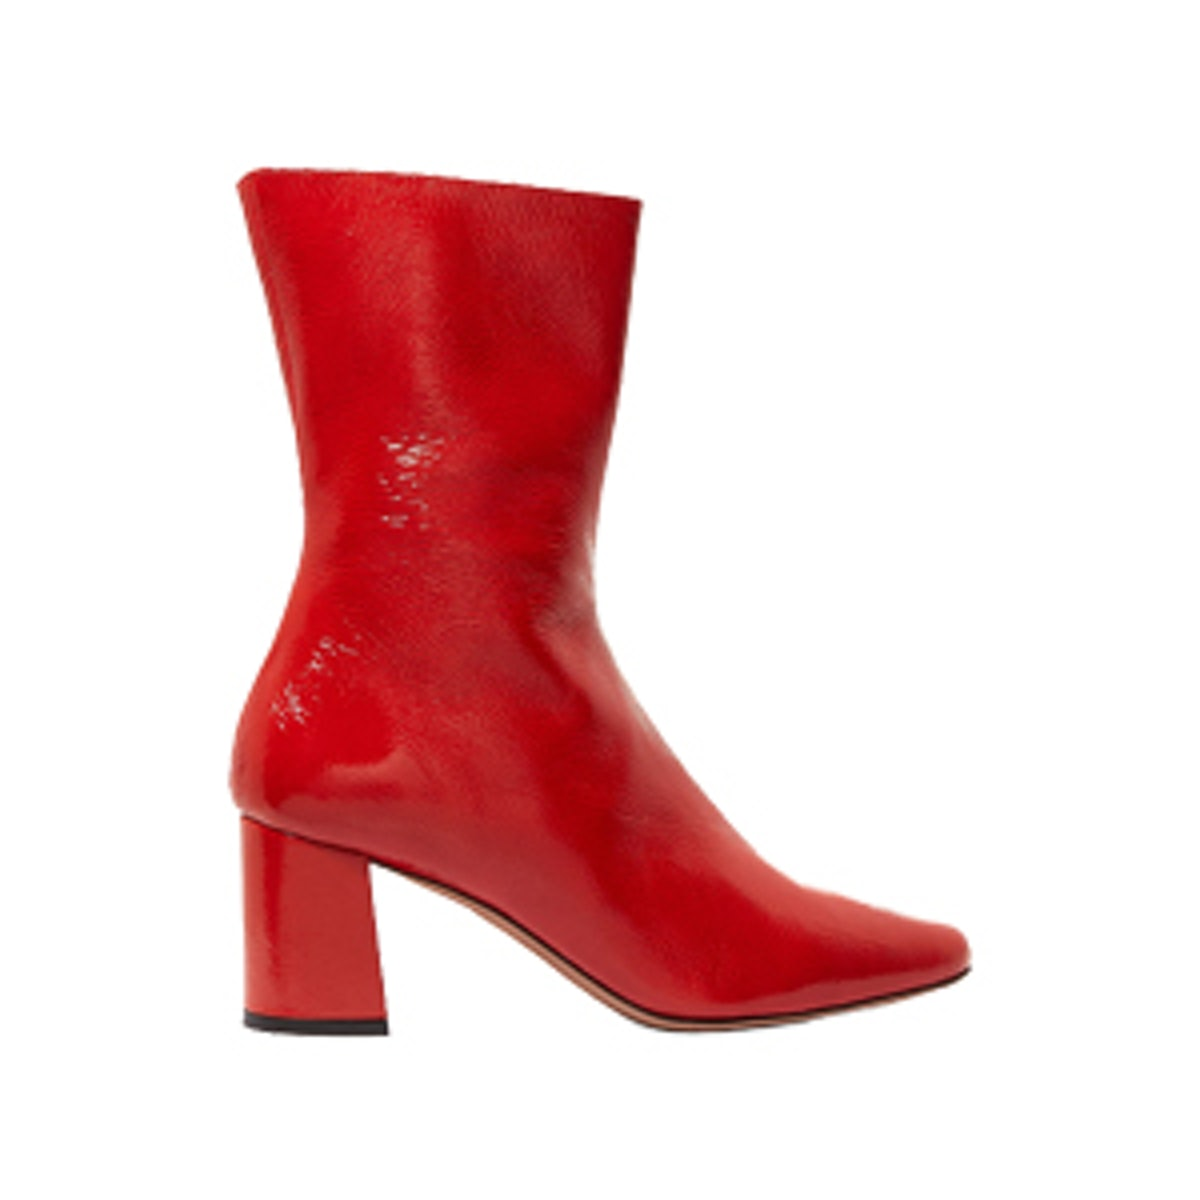 Mira Patent Textured-Leather Ankle Boots